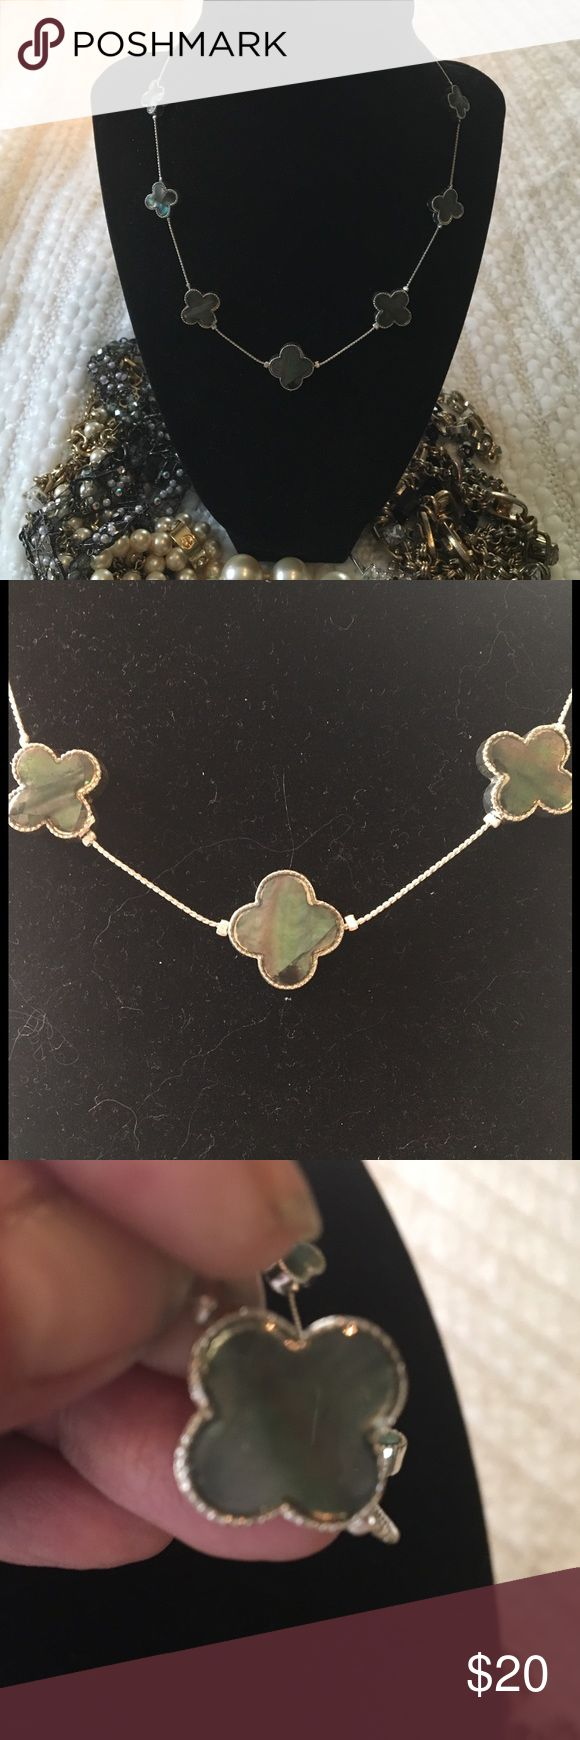 Costume Silver Plated Mother of Pearl Necklace Very dainty yet elegant 16 inch silver plated cloverleaf design costume mother of pearl necklace. The mother of pearl is a beautiful color gray-ish pink green depending on how the light hits it, it is on both sides of the clover as shown in the picture above & it has an extender so it can go up to 18 inches. As much as I ❤️ layering I wear this necklace by itself BC the mother of pearl especially in the light has such an impact it's beautiful…